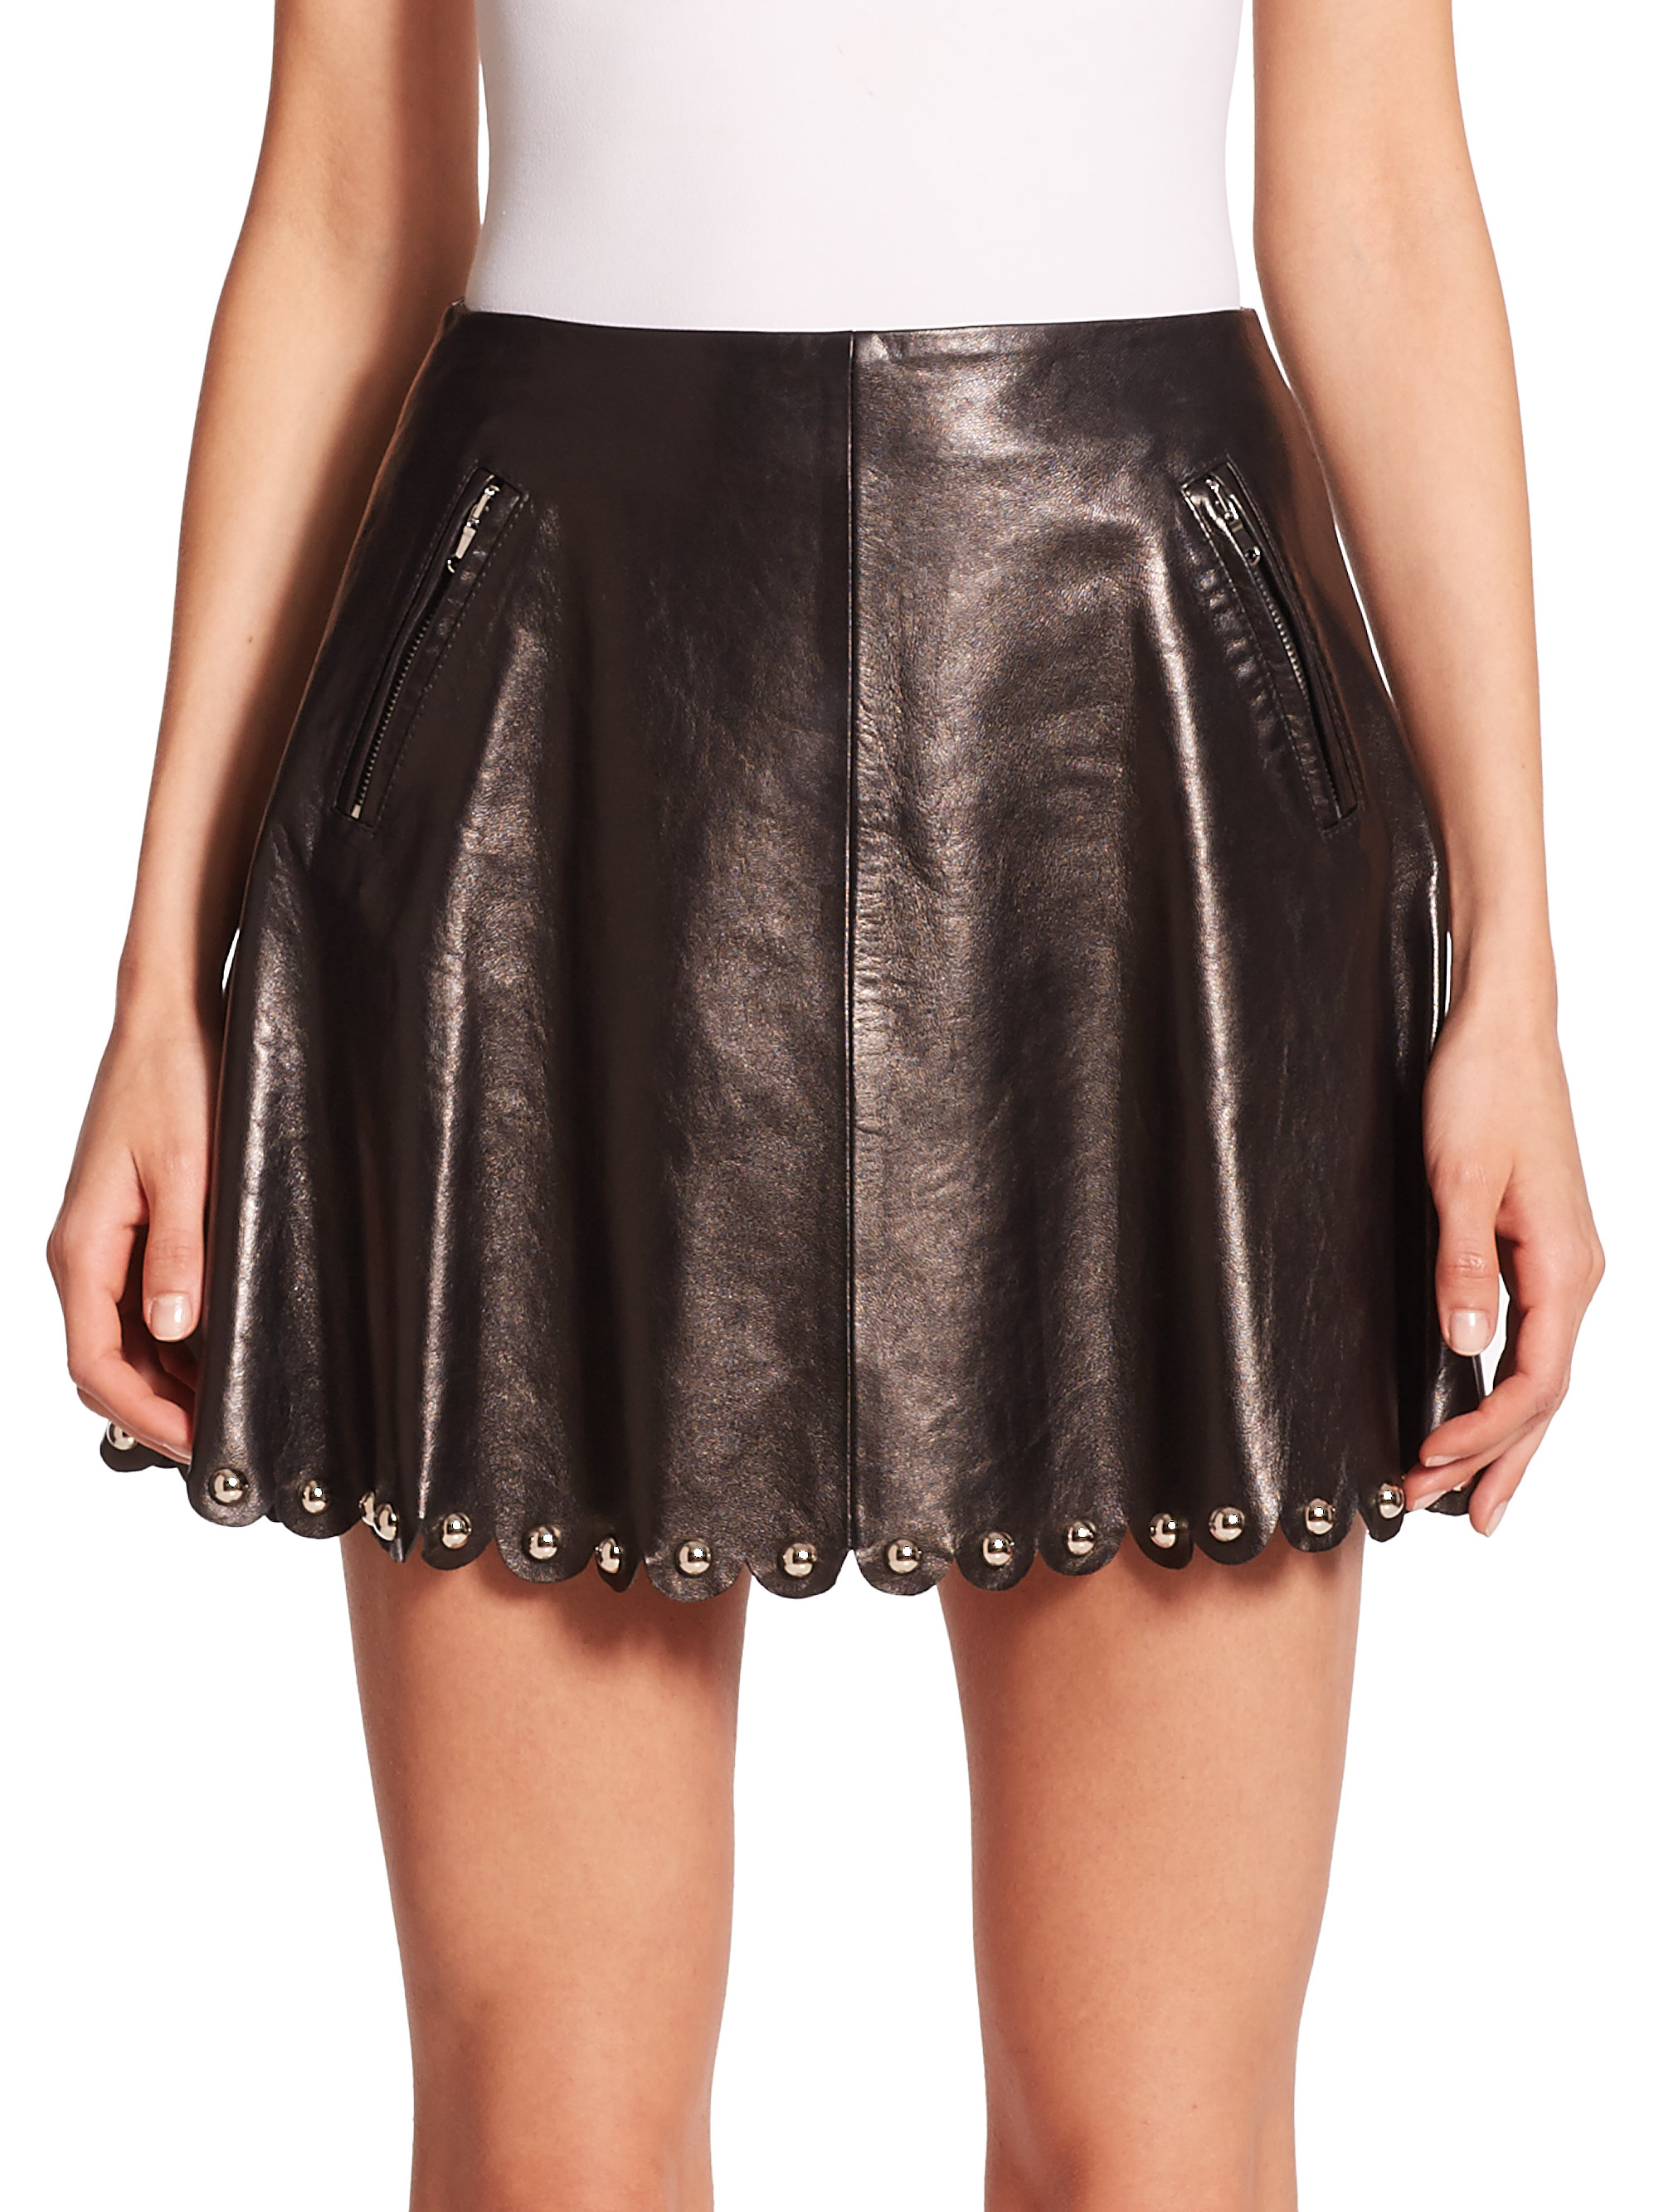 Light-pink leather mini skirt with yellow, purple and green leather stitching and silver-tone metal rounded studs. Versace skirt has a fitted waist, concealed zip fastening at side, triangular perforations at back and is fully lined in designer-printed pink satin. % leather; lining: rayon, 4% elastane. Dry clean.